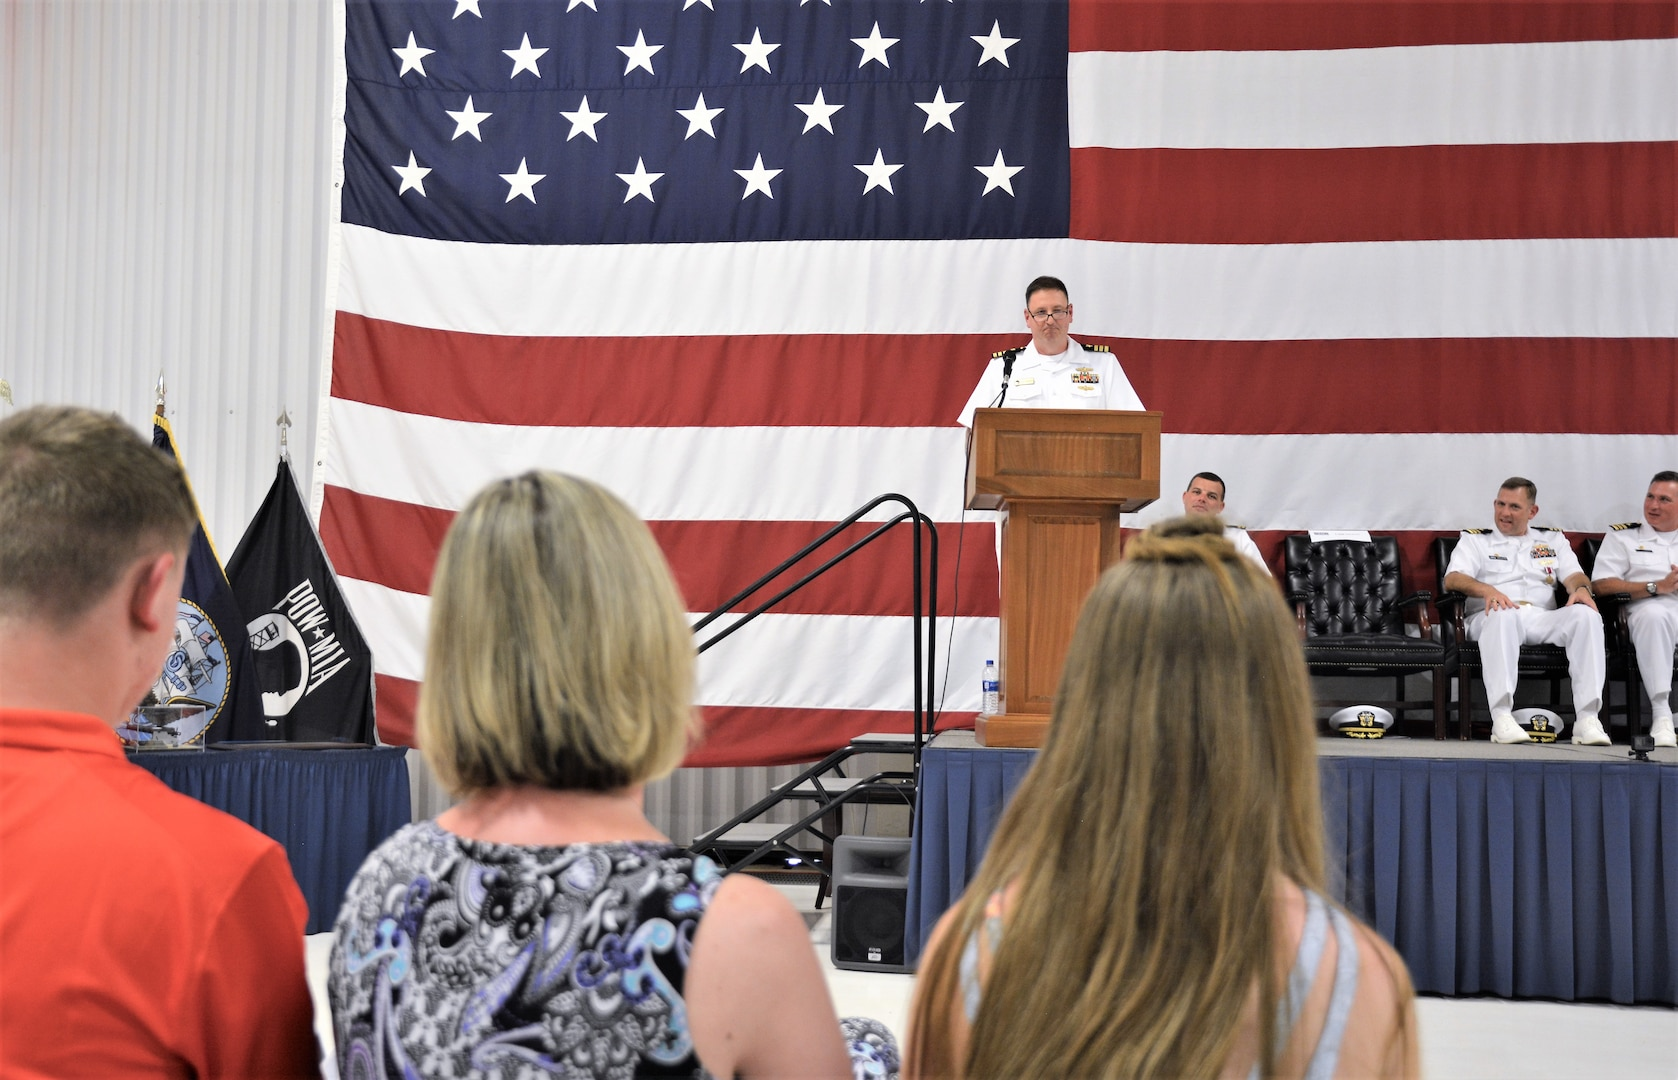 IMAGE: (Center) Cmdr. Joseph Oravec addresses more than 200 Sailors and guests after accepting command of Naval Surface Warfare Center Dahlgren Division, Dam Neck Activity from CDR Andrew Hoffman. The two naval officers held their traditional Change of Command ceremony at Naval Air Station (NAS) Oceana's Center for Naval Aviation Technical Training Unit's ceremonial hangar aboard NAS Oceana June 27. Oravec is the command's 28th commanding officer.